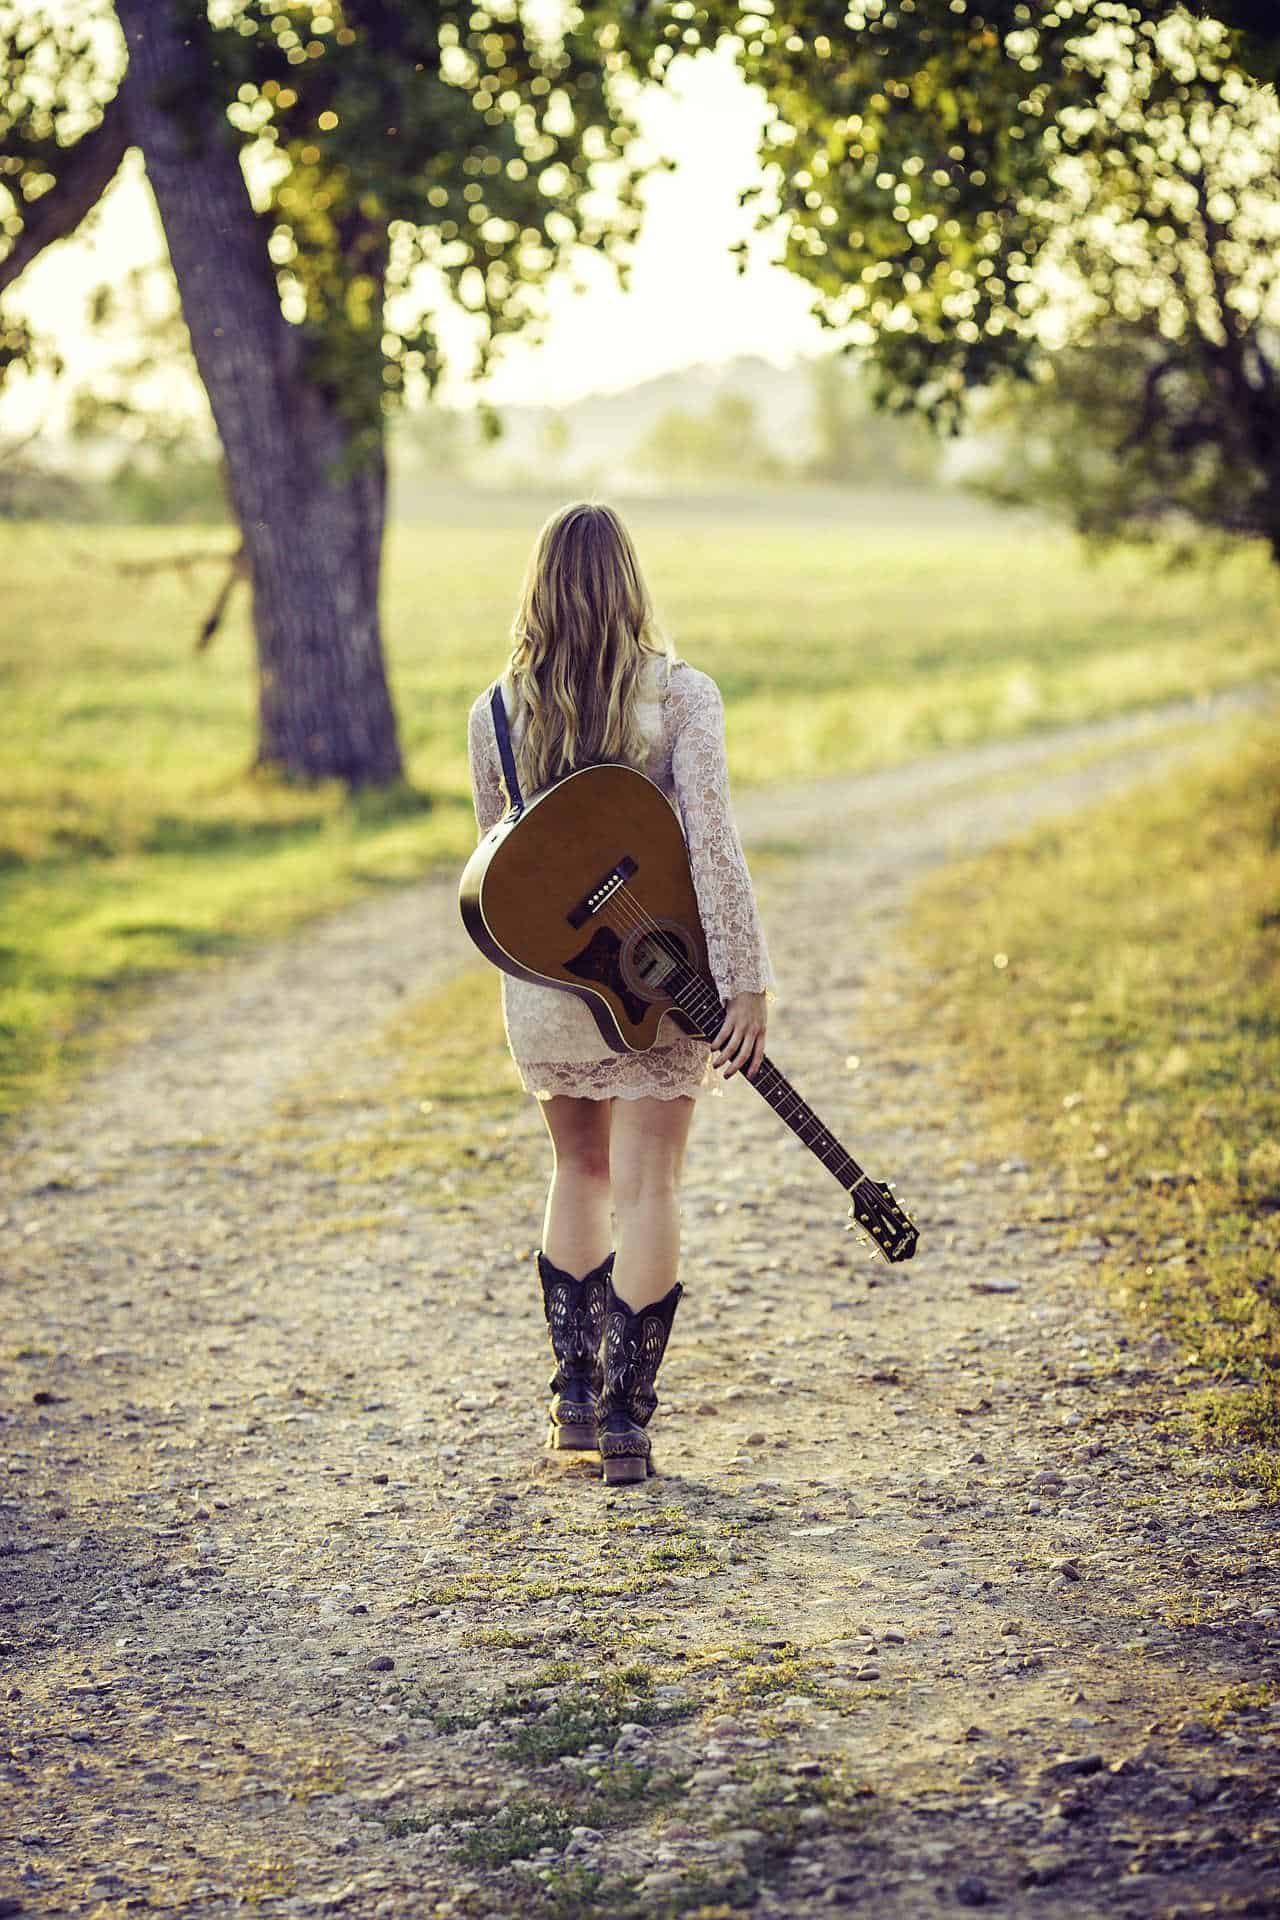 5 Ways To Become More Like Your Musical Heroes #musician #music #entertainment #beverlyhills #beverlyhillsmagazine #bevhillsmag